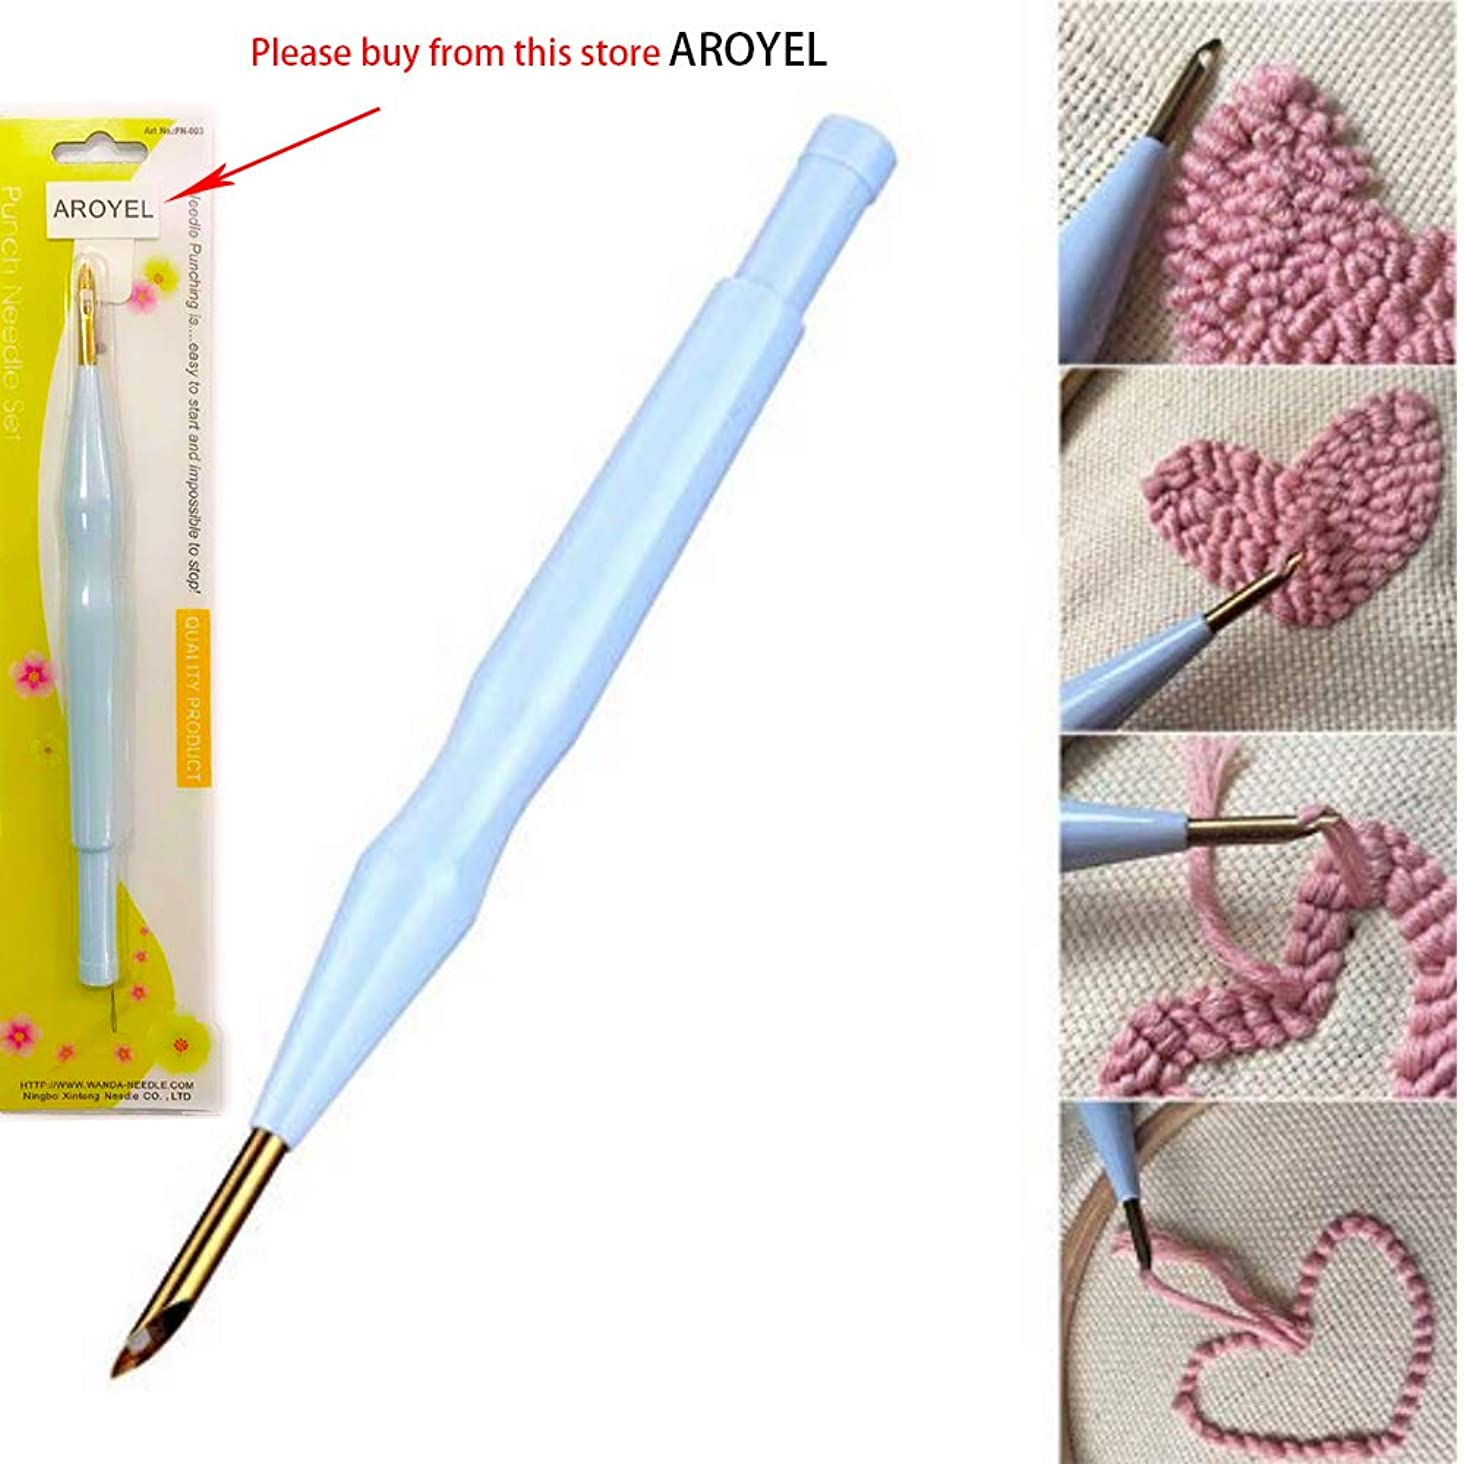 Magic Embroidery Pen Embroidery Needle Weaving Tool, Adjustable Punch Needle Stitching Kit Rug Yarn Needle Embroidery Pen Felting Threader Needles Beginners Beginner